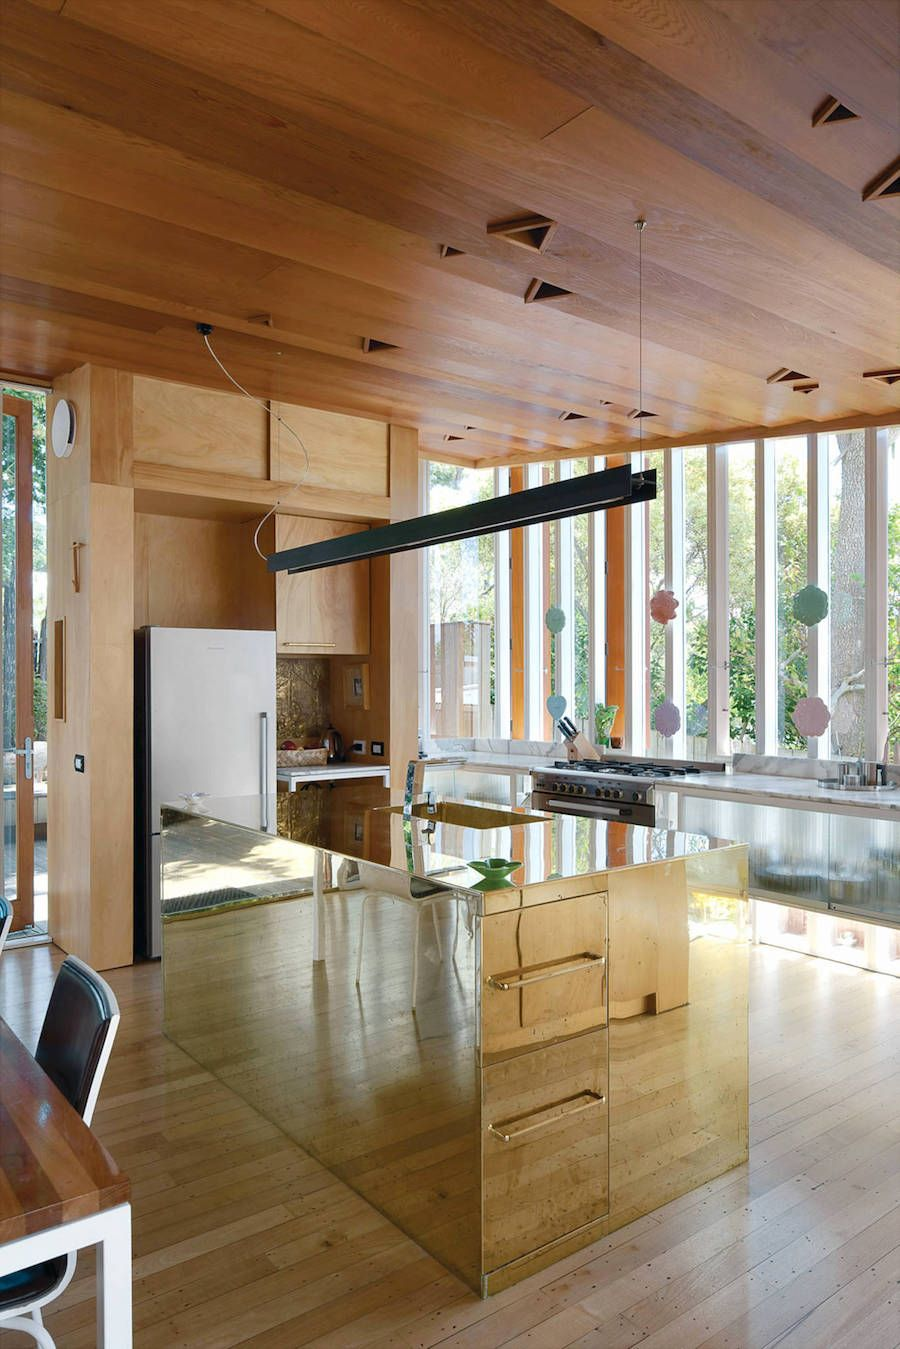 Polished Cabinetry - Cladded Metal - Brass Accents - Home Design